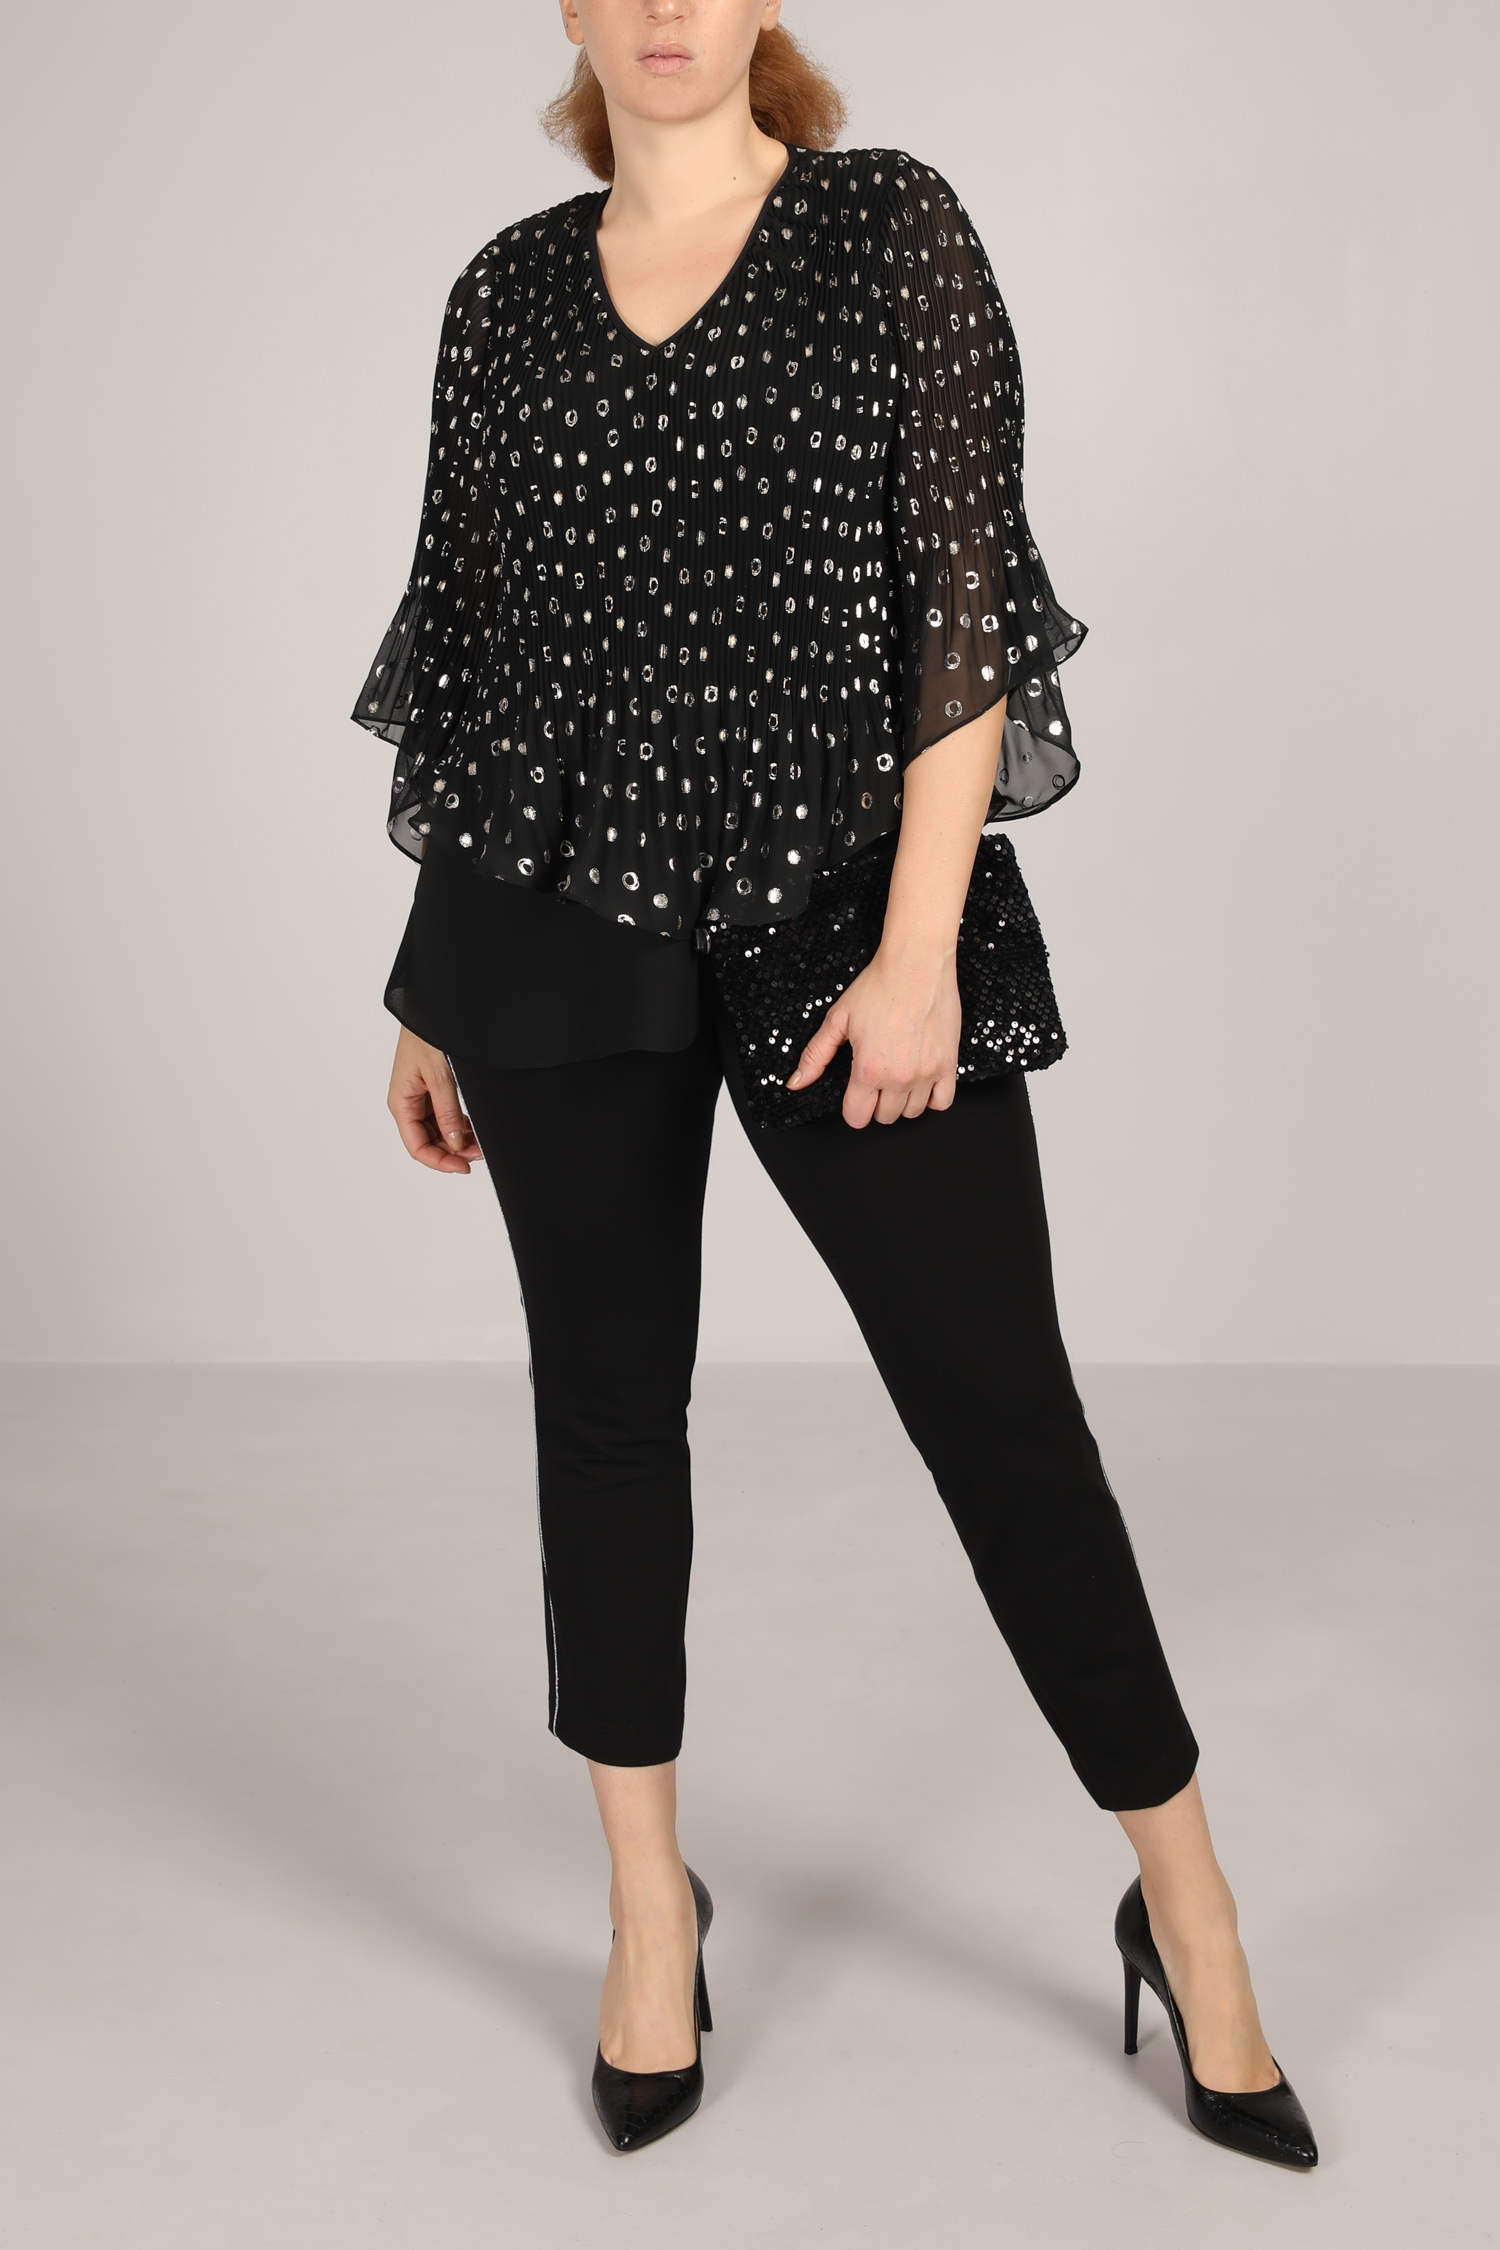 Lined top with printed ruffles